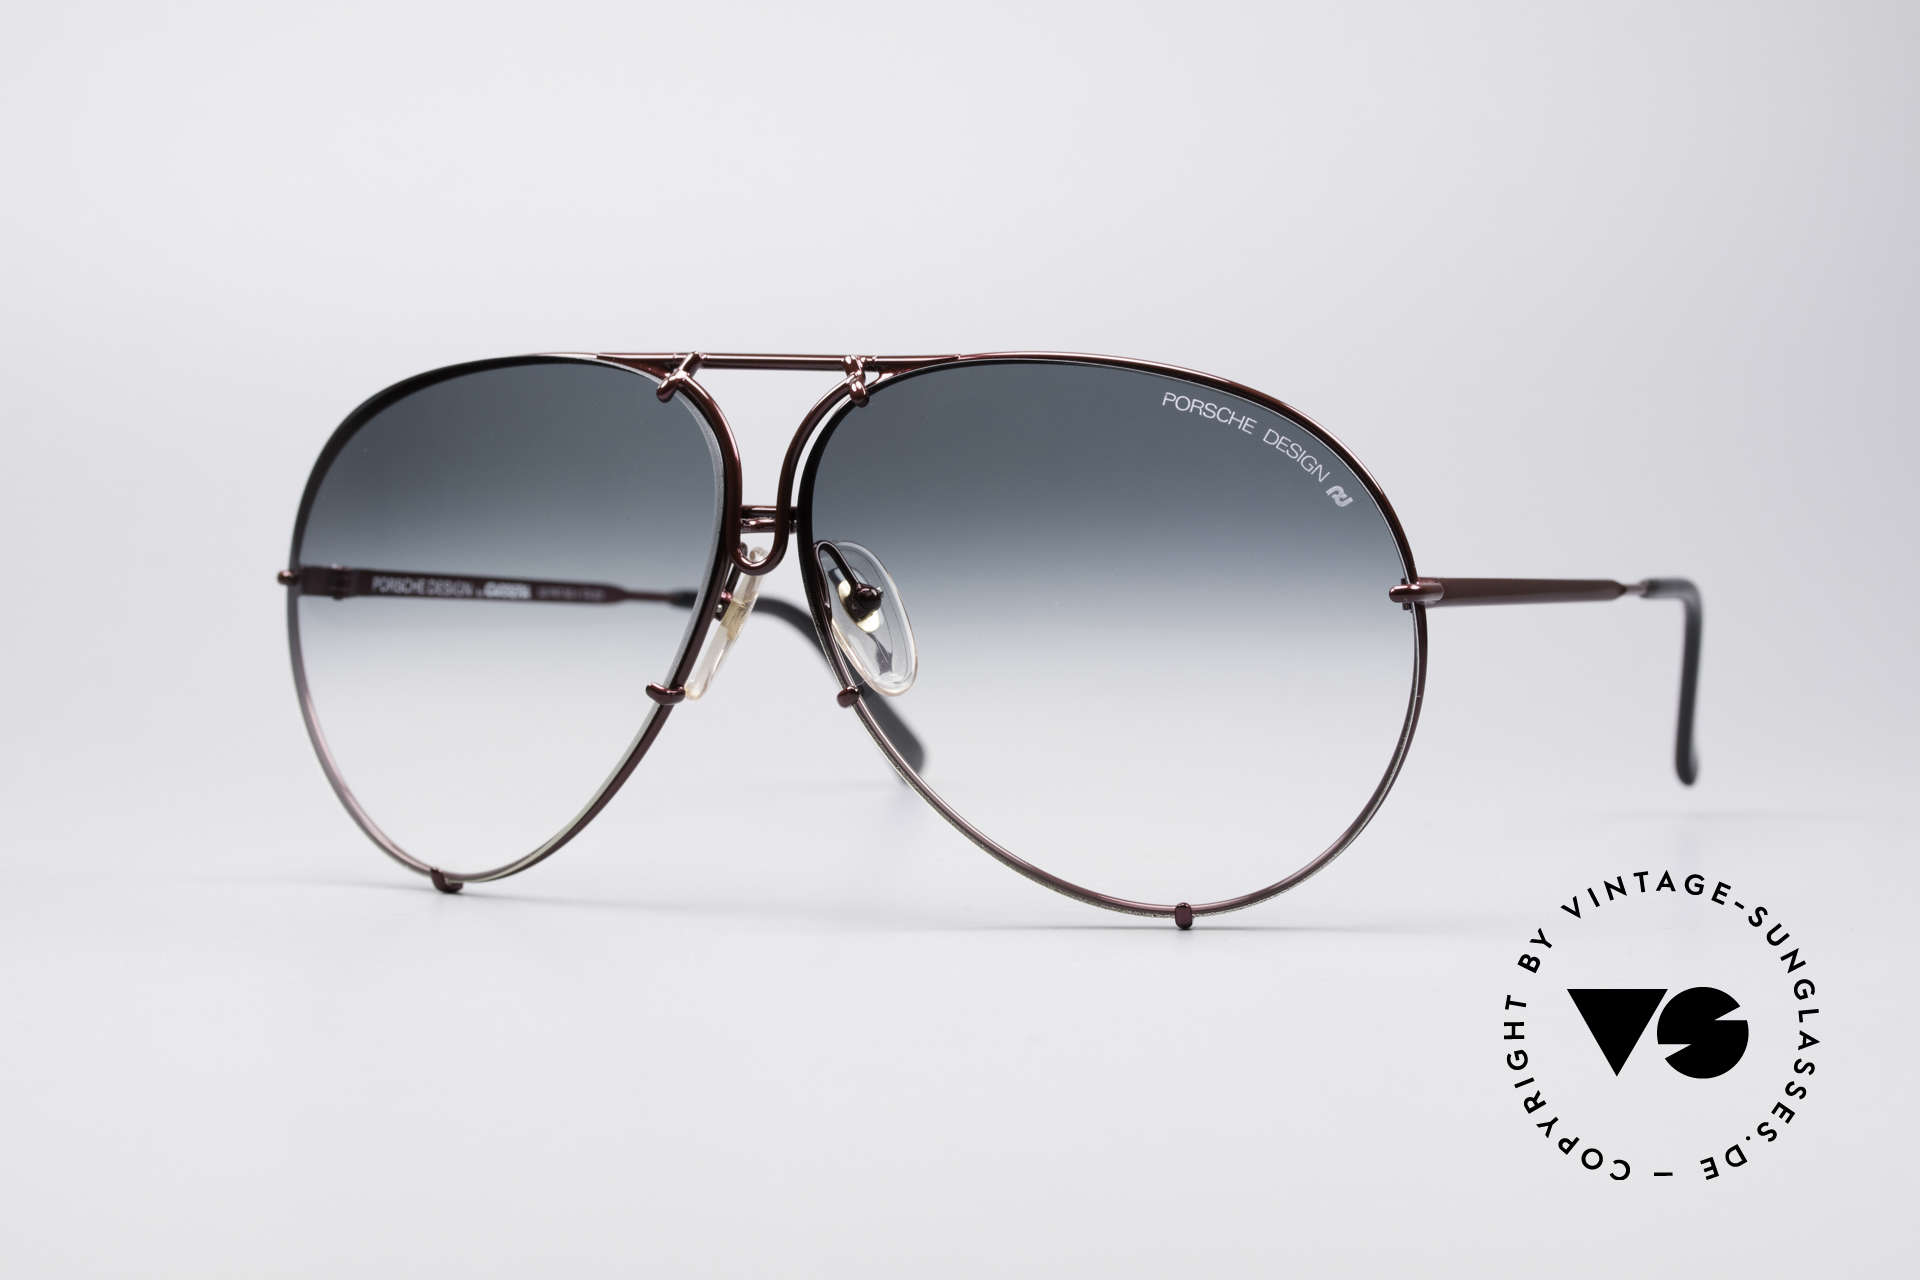 Porsche 5621 XL 80's Aviator Sunglasses, vintage Porsche Design by Carrera shades from 1987, Made for Men and Women